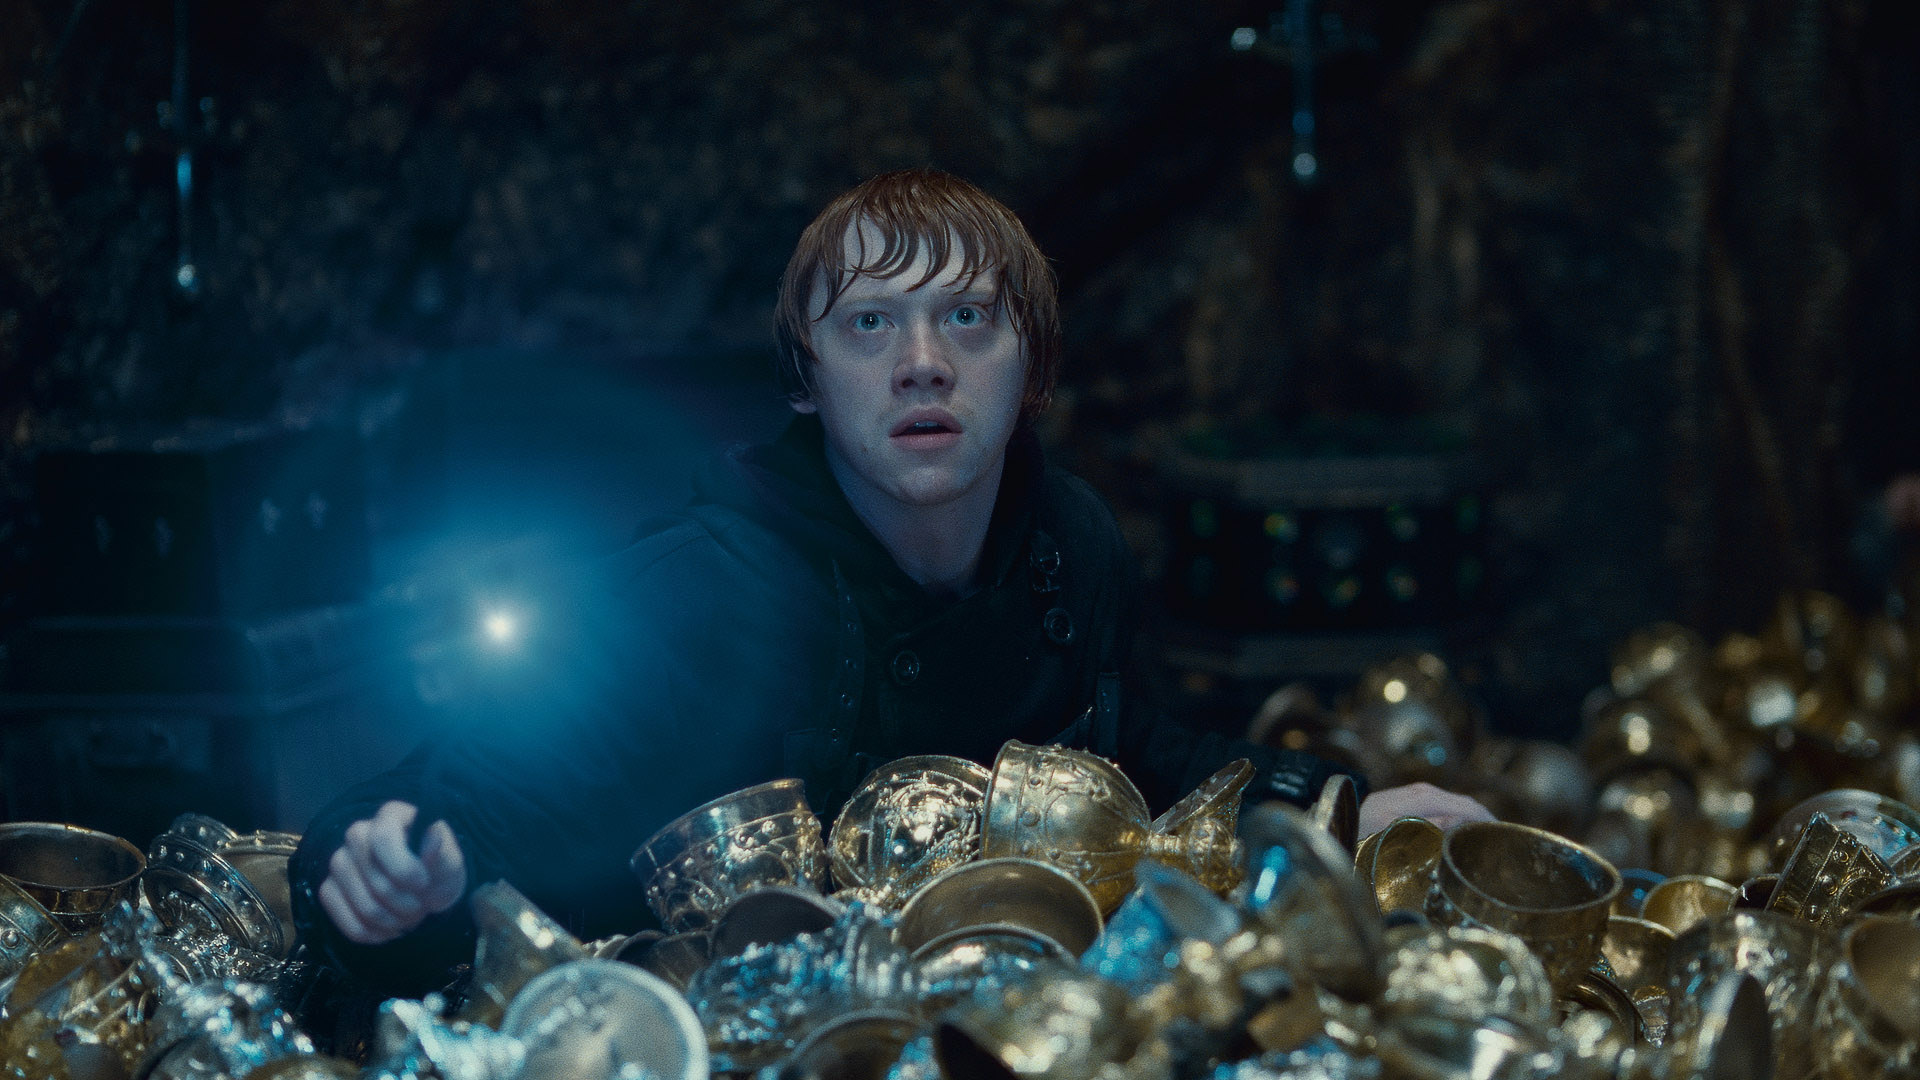 Rupert Grint holds a glowing wand amidst gold cups in Harry Potter and the Deathly Hallows: Part 2